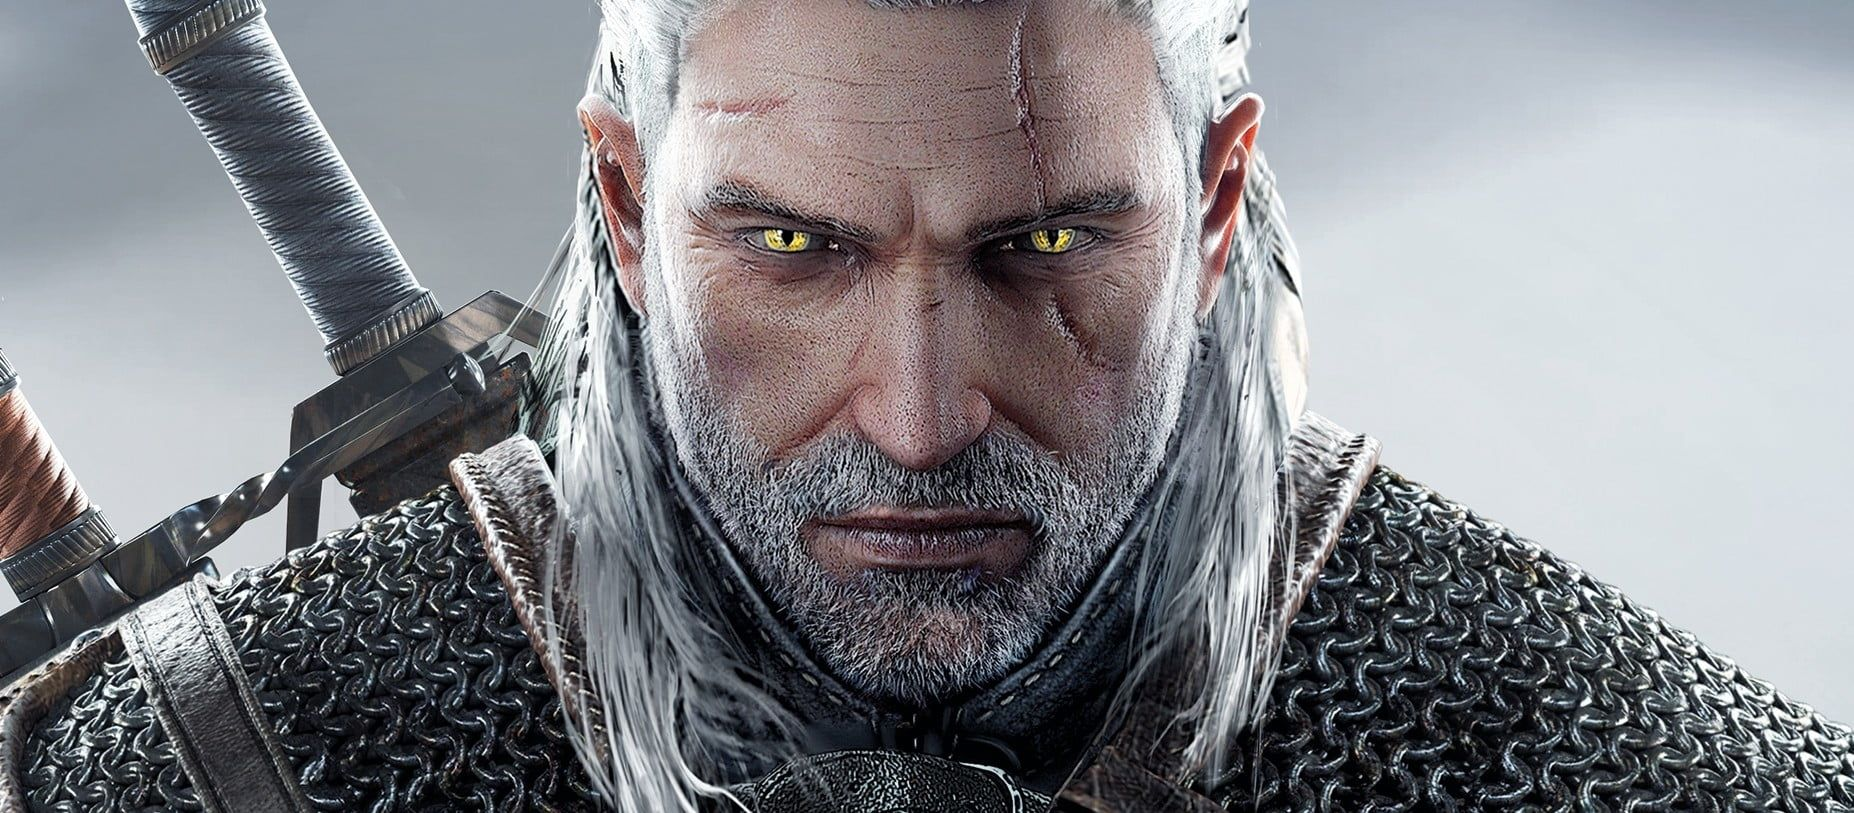 The Witcher Wallpaper The Witcher 3 Wild Hunt Geralt Of Rivia Video Games 720p Wallpaper Hdwallpaper Des The Witcher The Witcher Wallpaper Geralt Of Rivia